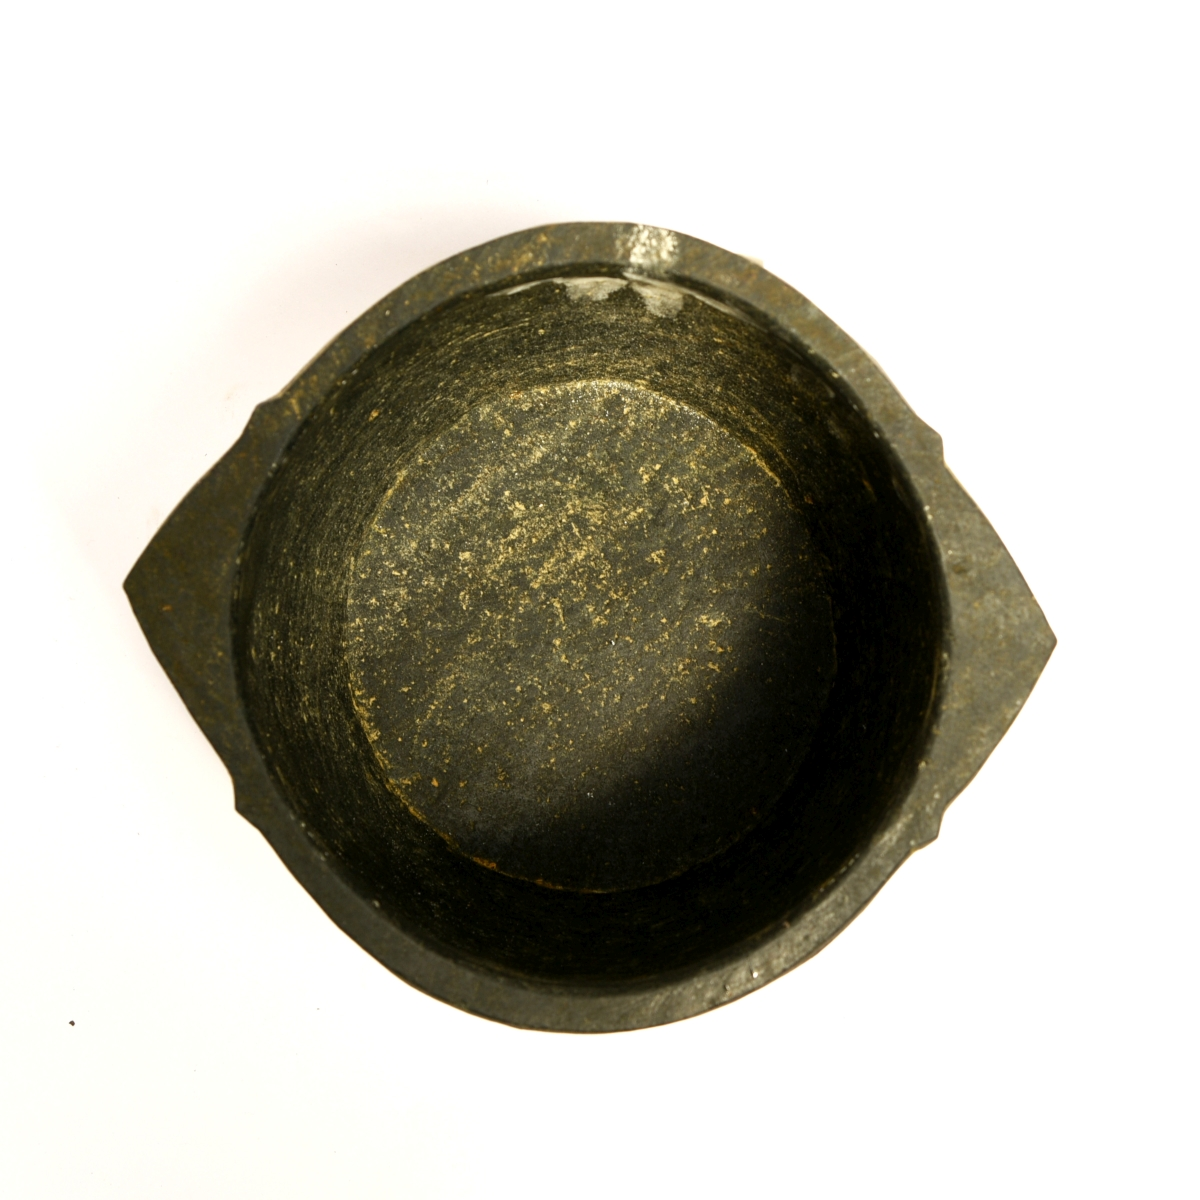 soapstone cooking pot top view